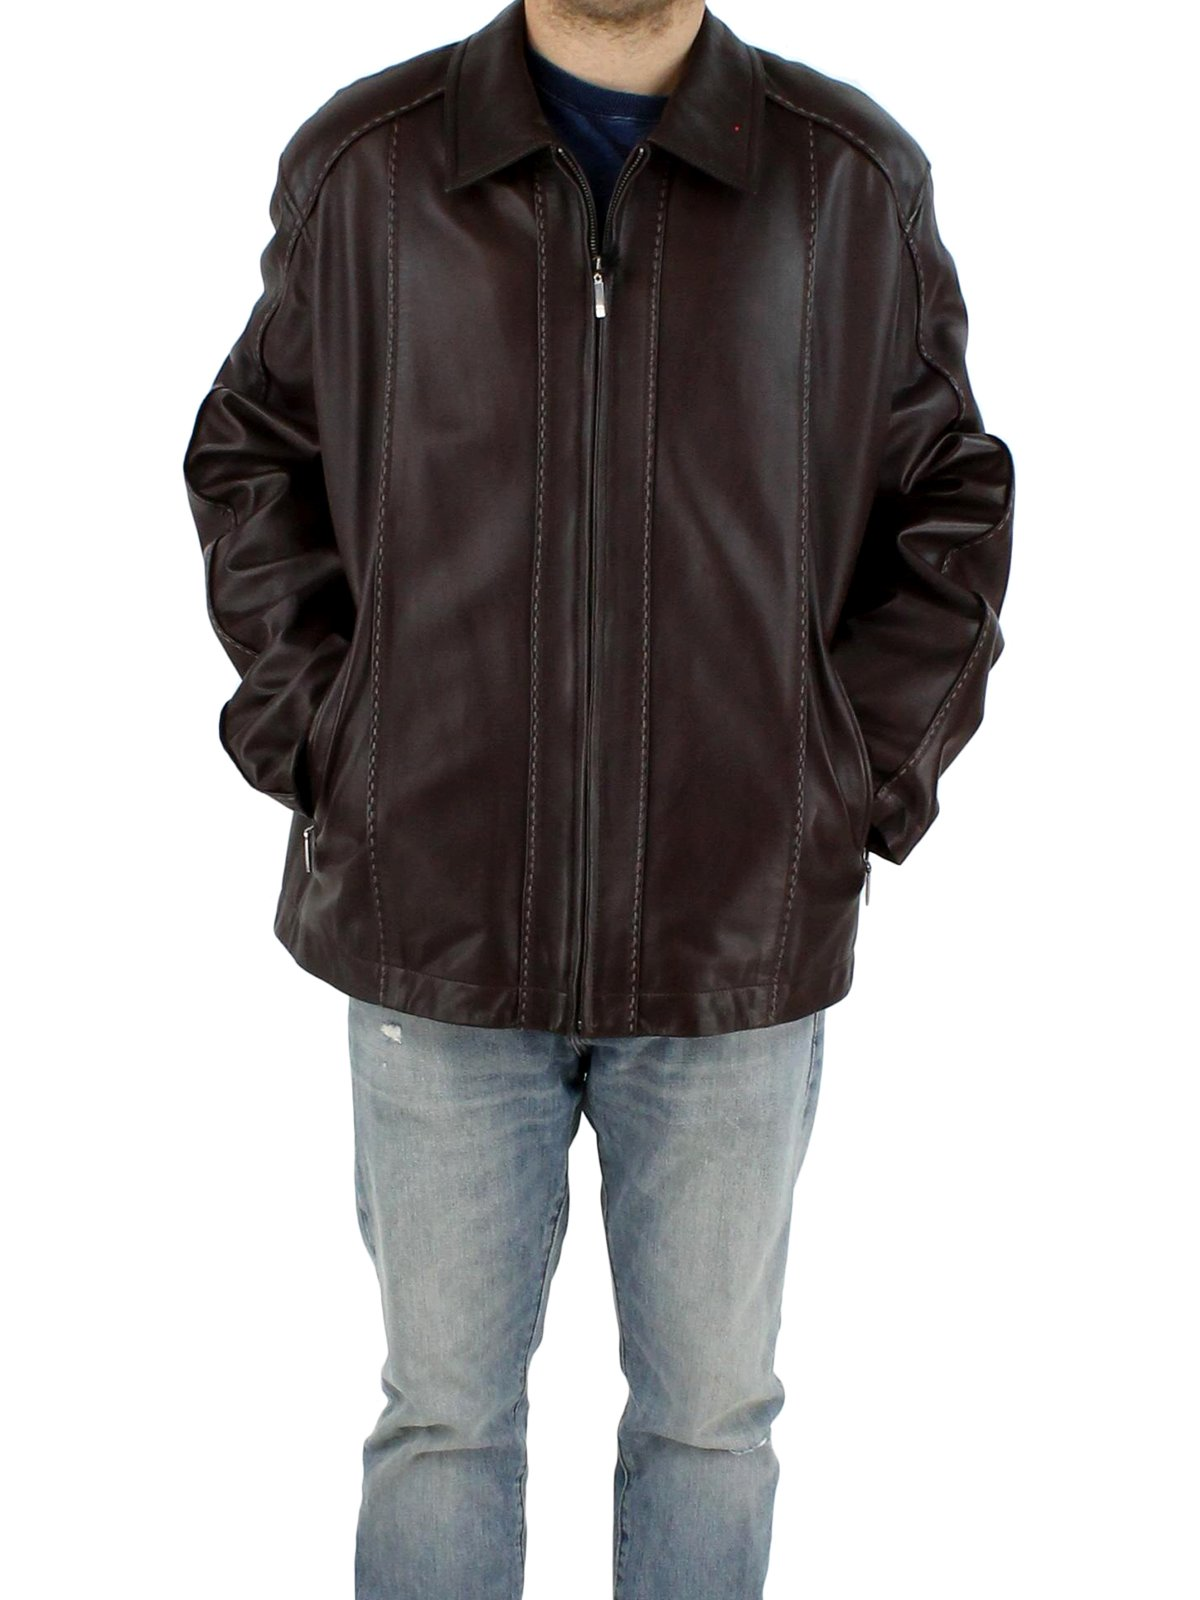 Lamb Leather Jacket Men S Xlarge Brown Estate Furs